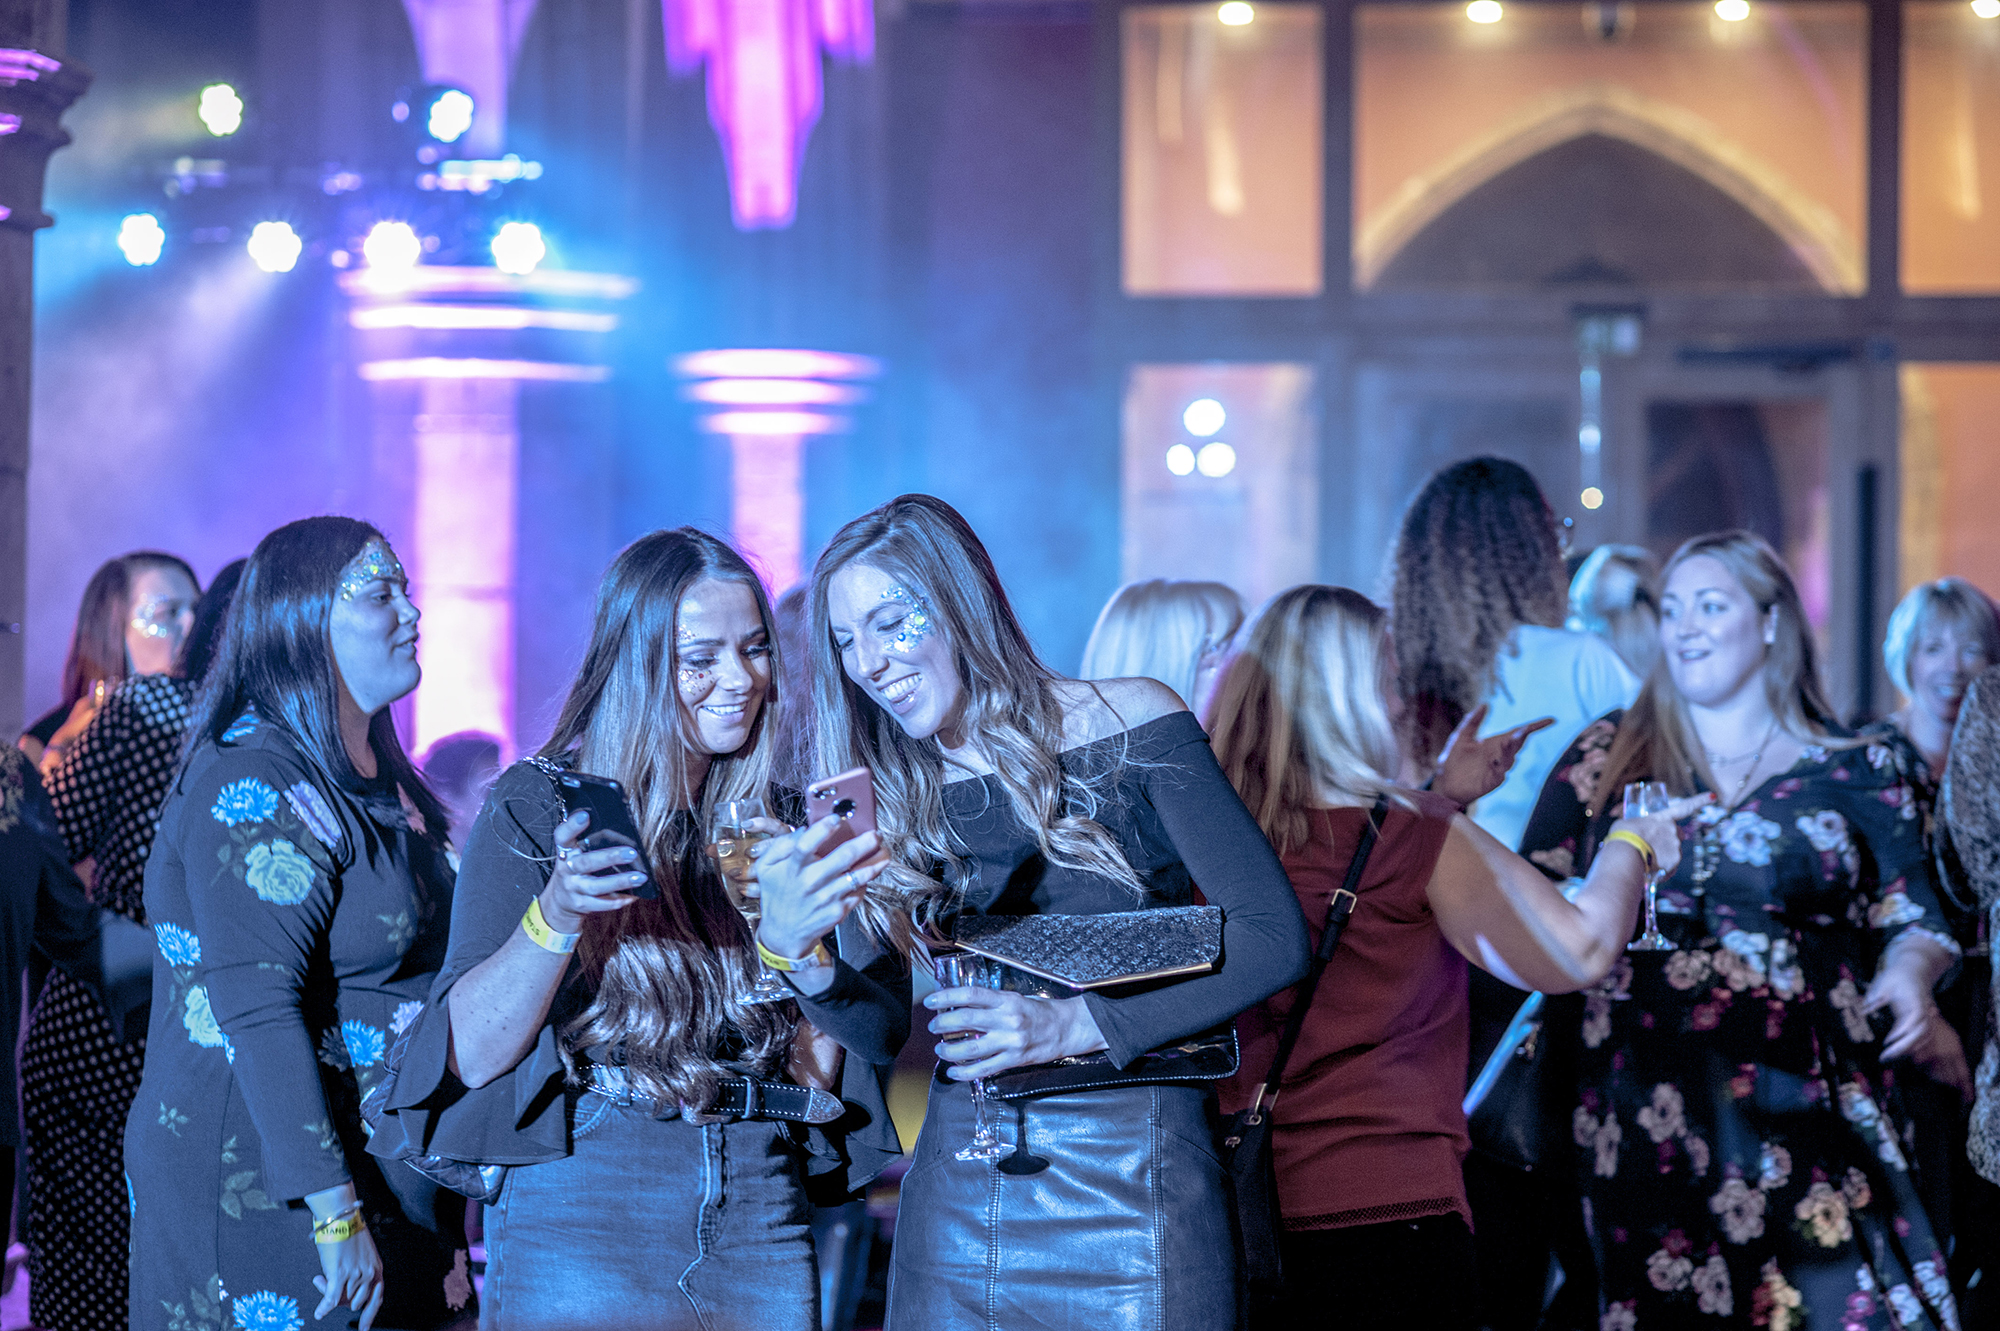 EVENT PHOTOGRAPHY - Whether you're after documentary-style event photography, luxury party photography or wedding photography, our talented team will work closely with you to ensure you receive quality high resolution images and videos in the style and format you require.